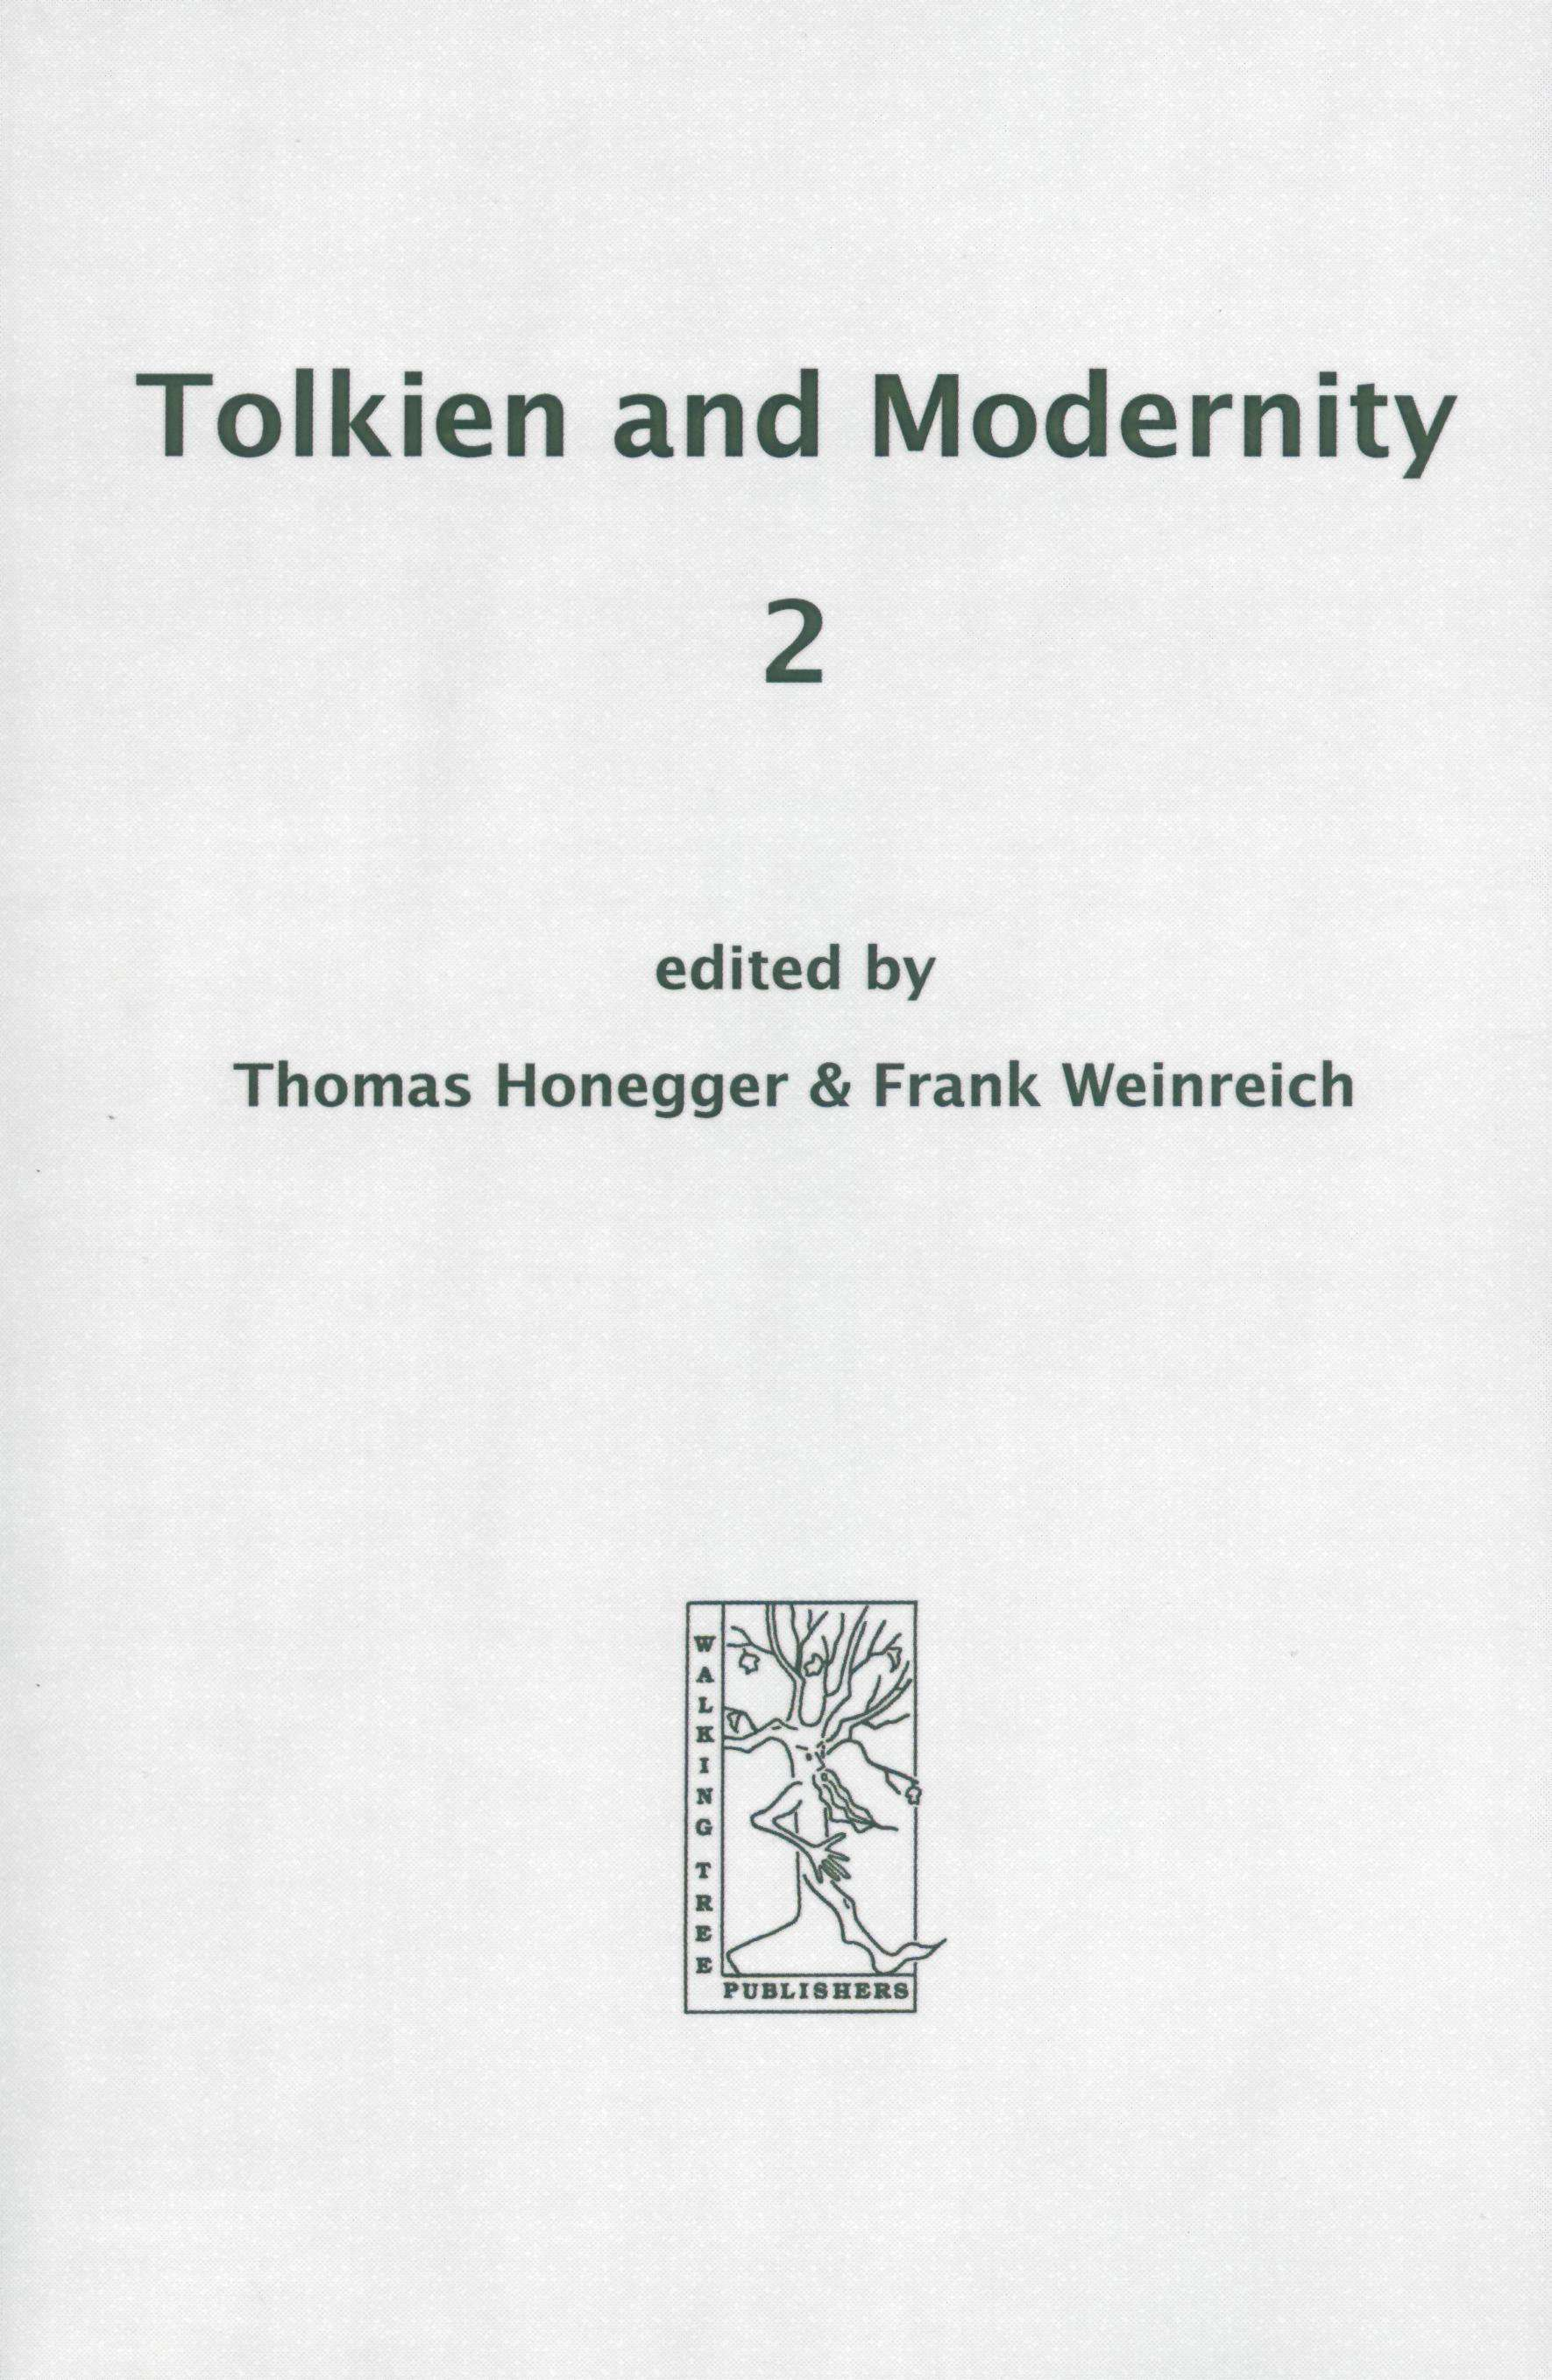 Tolkien and Modernity 2 (Cormarë Series #10)